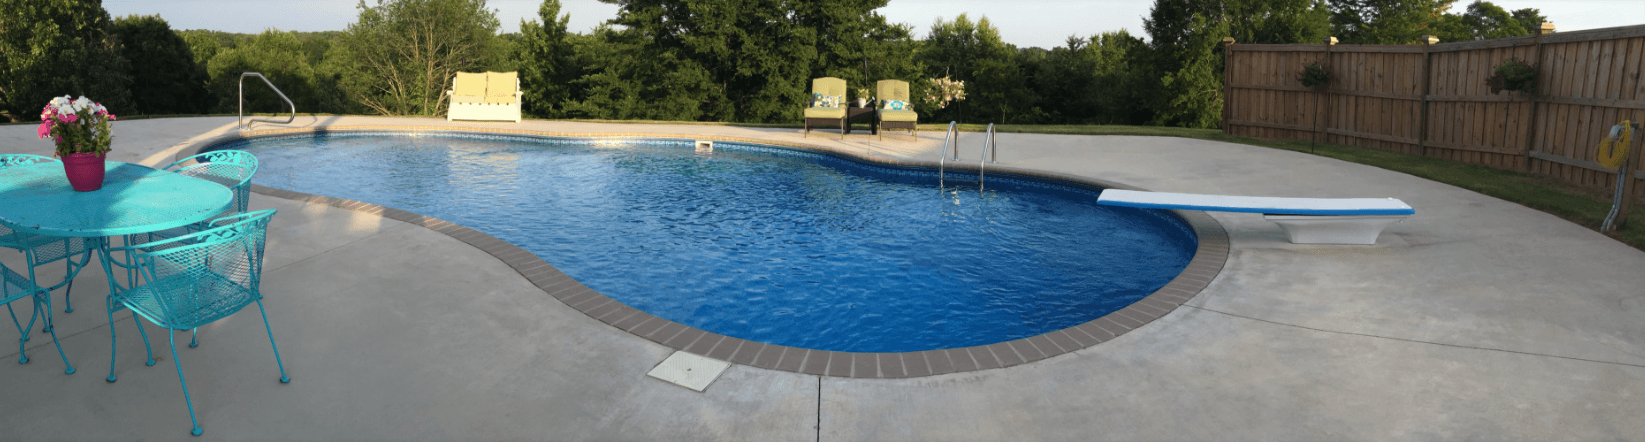 Pools Cabot Arkansas